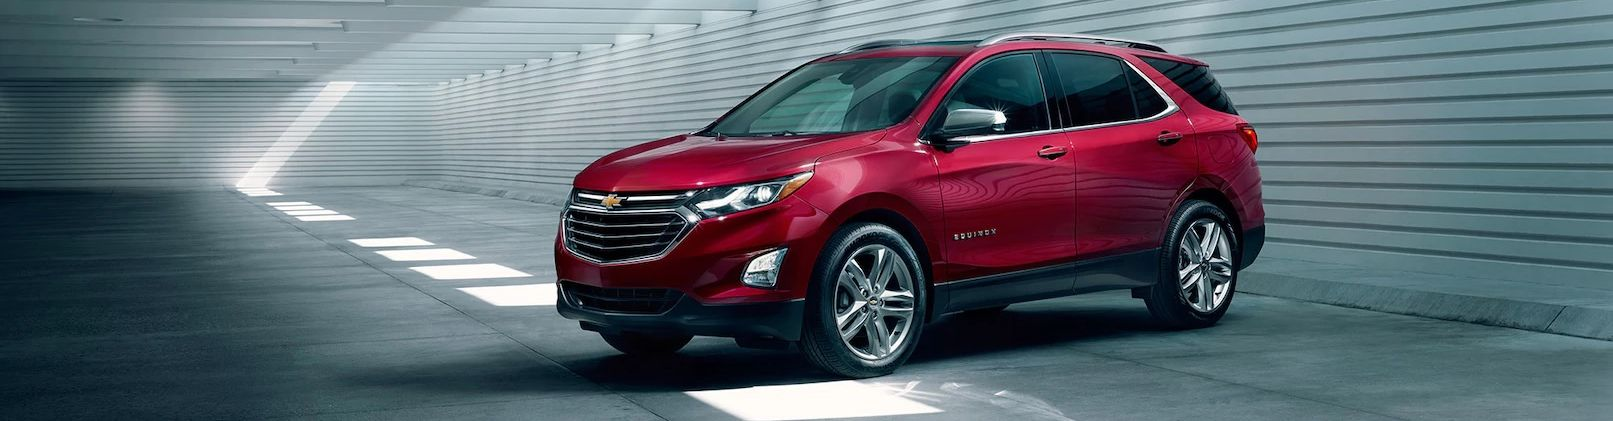 Chevrolet Equinox 2018 a la venta en Chantilly, VA